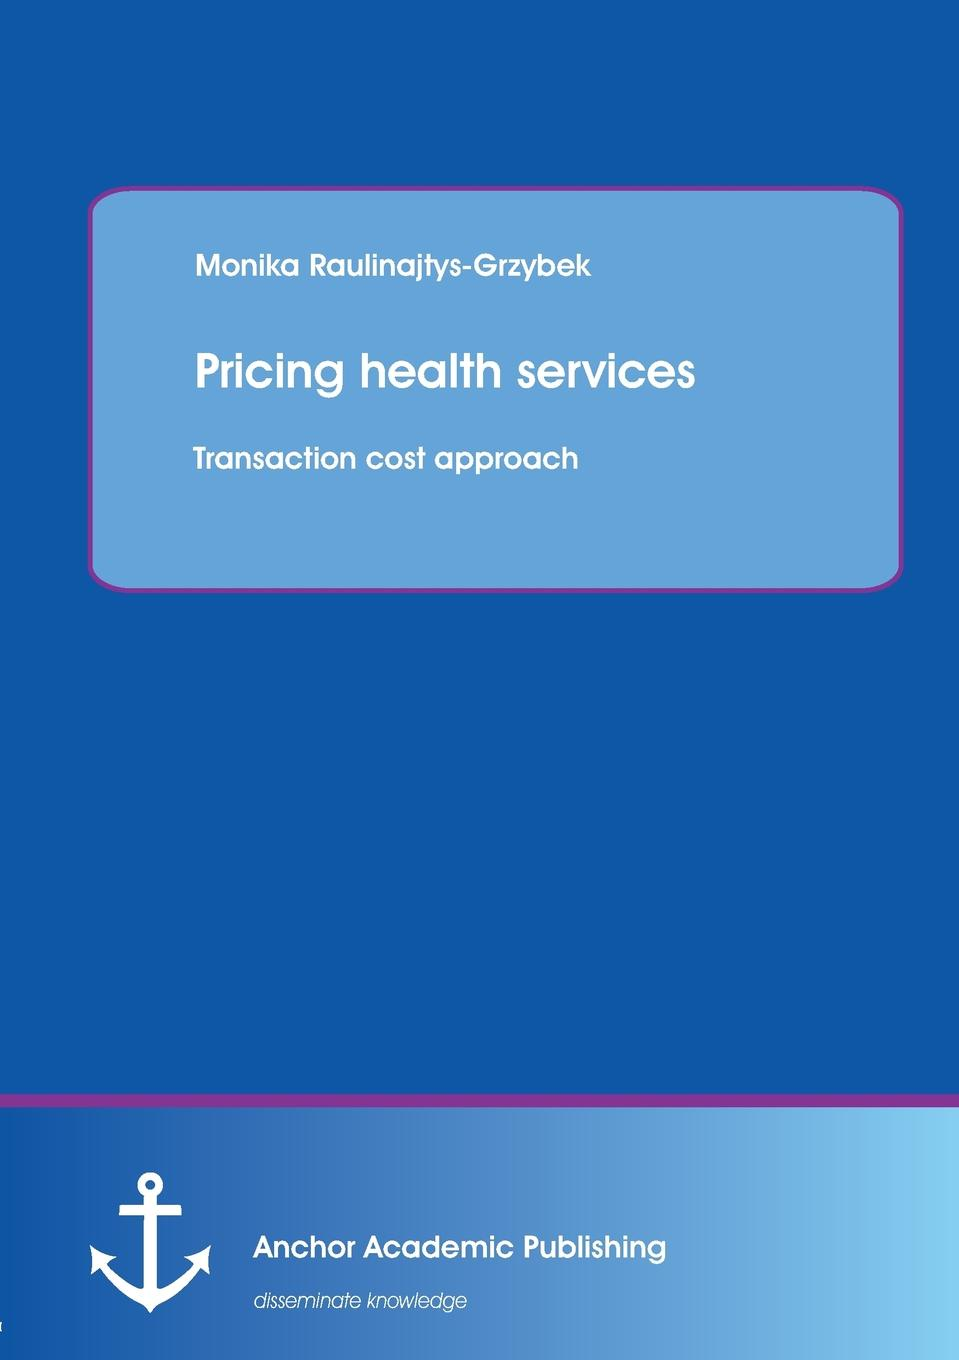 Monika Raulinajtys-Grzybek Pricing health services. Transaction cost approach the cost of contracting out